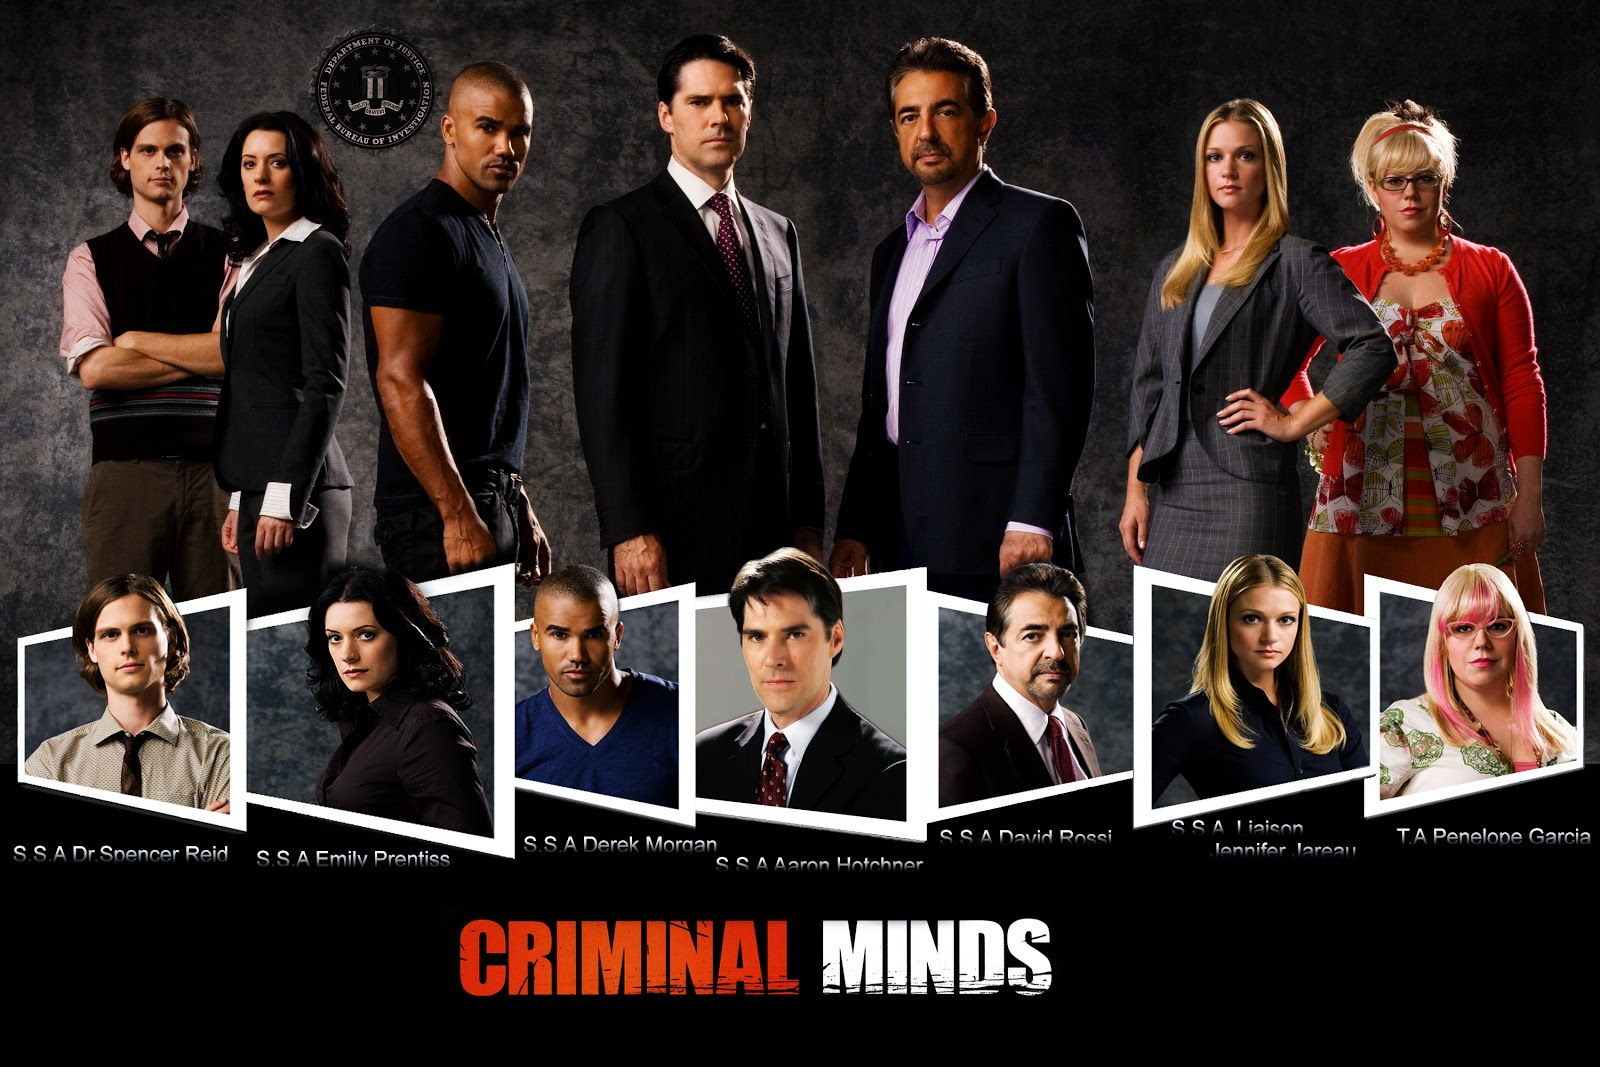 criminal_minds_poster9.jpg